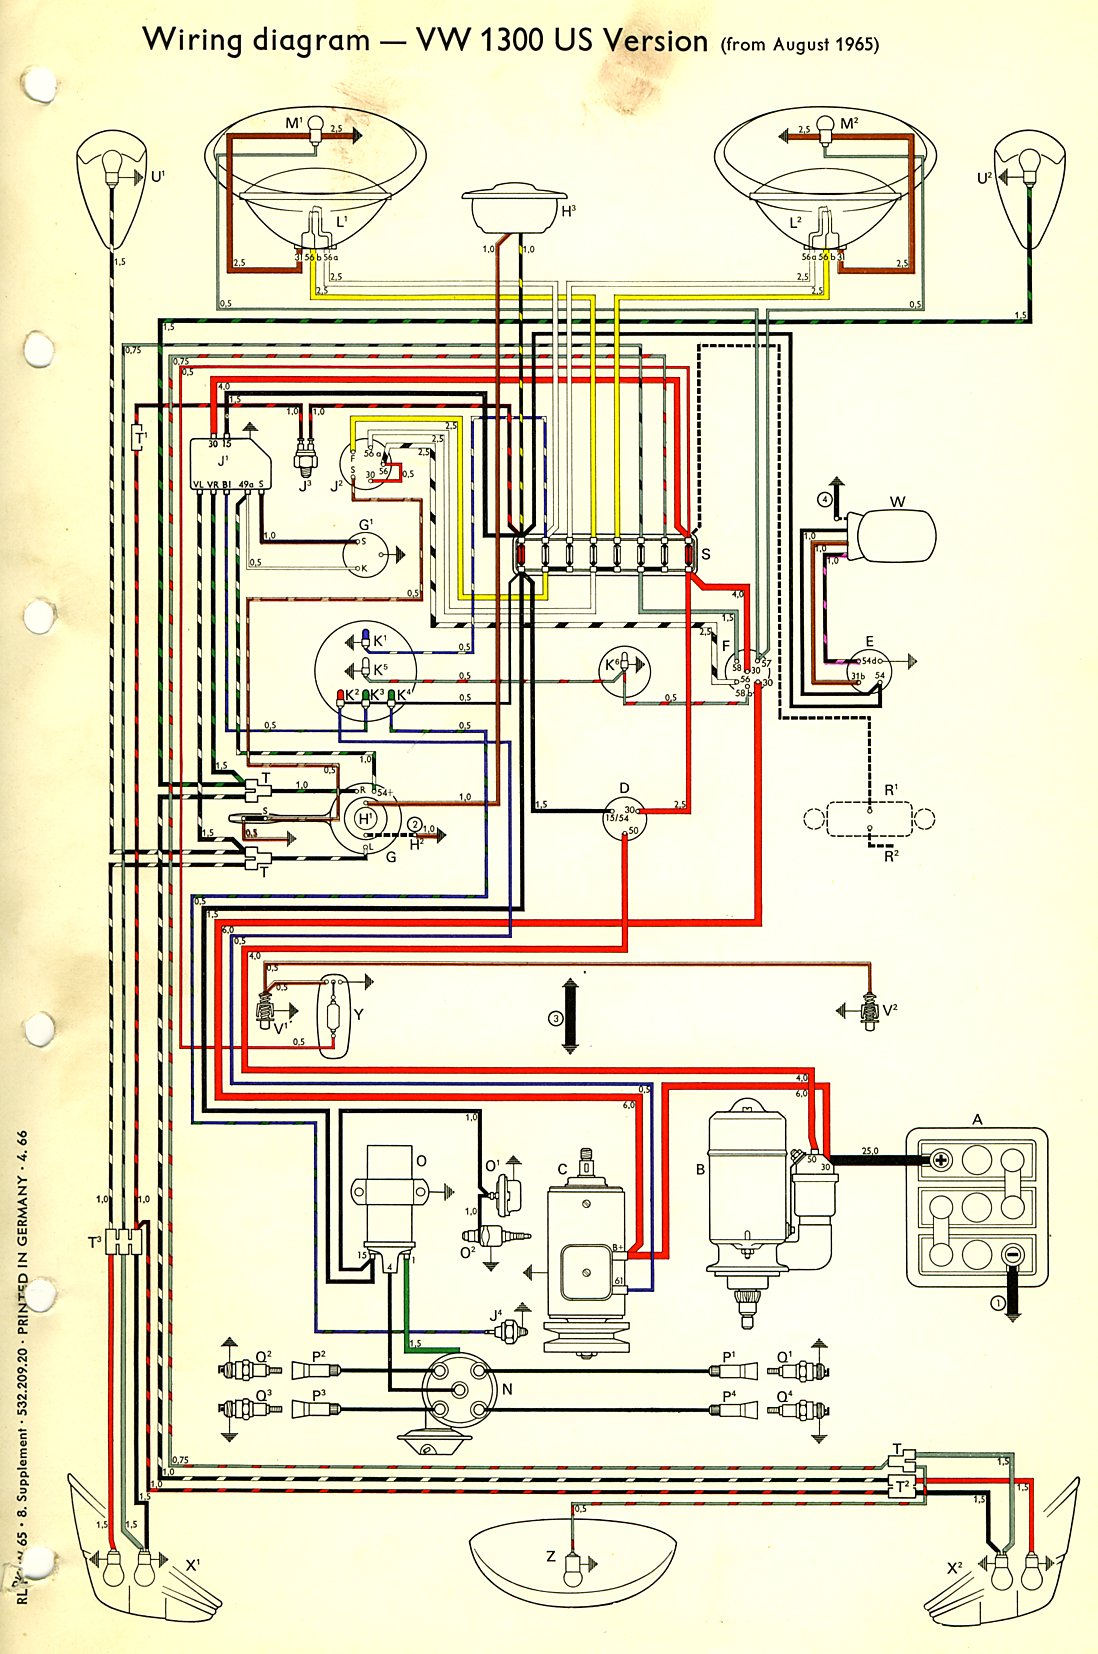 dune vw alternator wiring wiring diagramwiring 1967 diagram vw beetle ignition data wiring diagram update dune